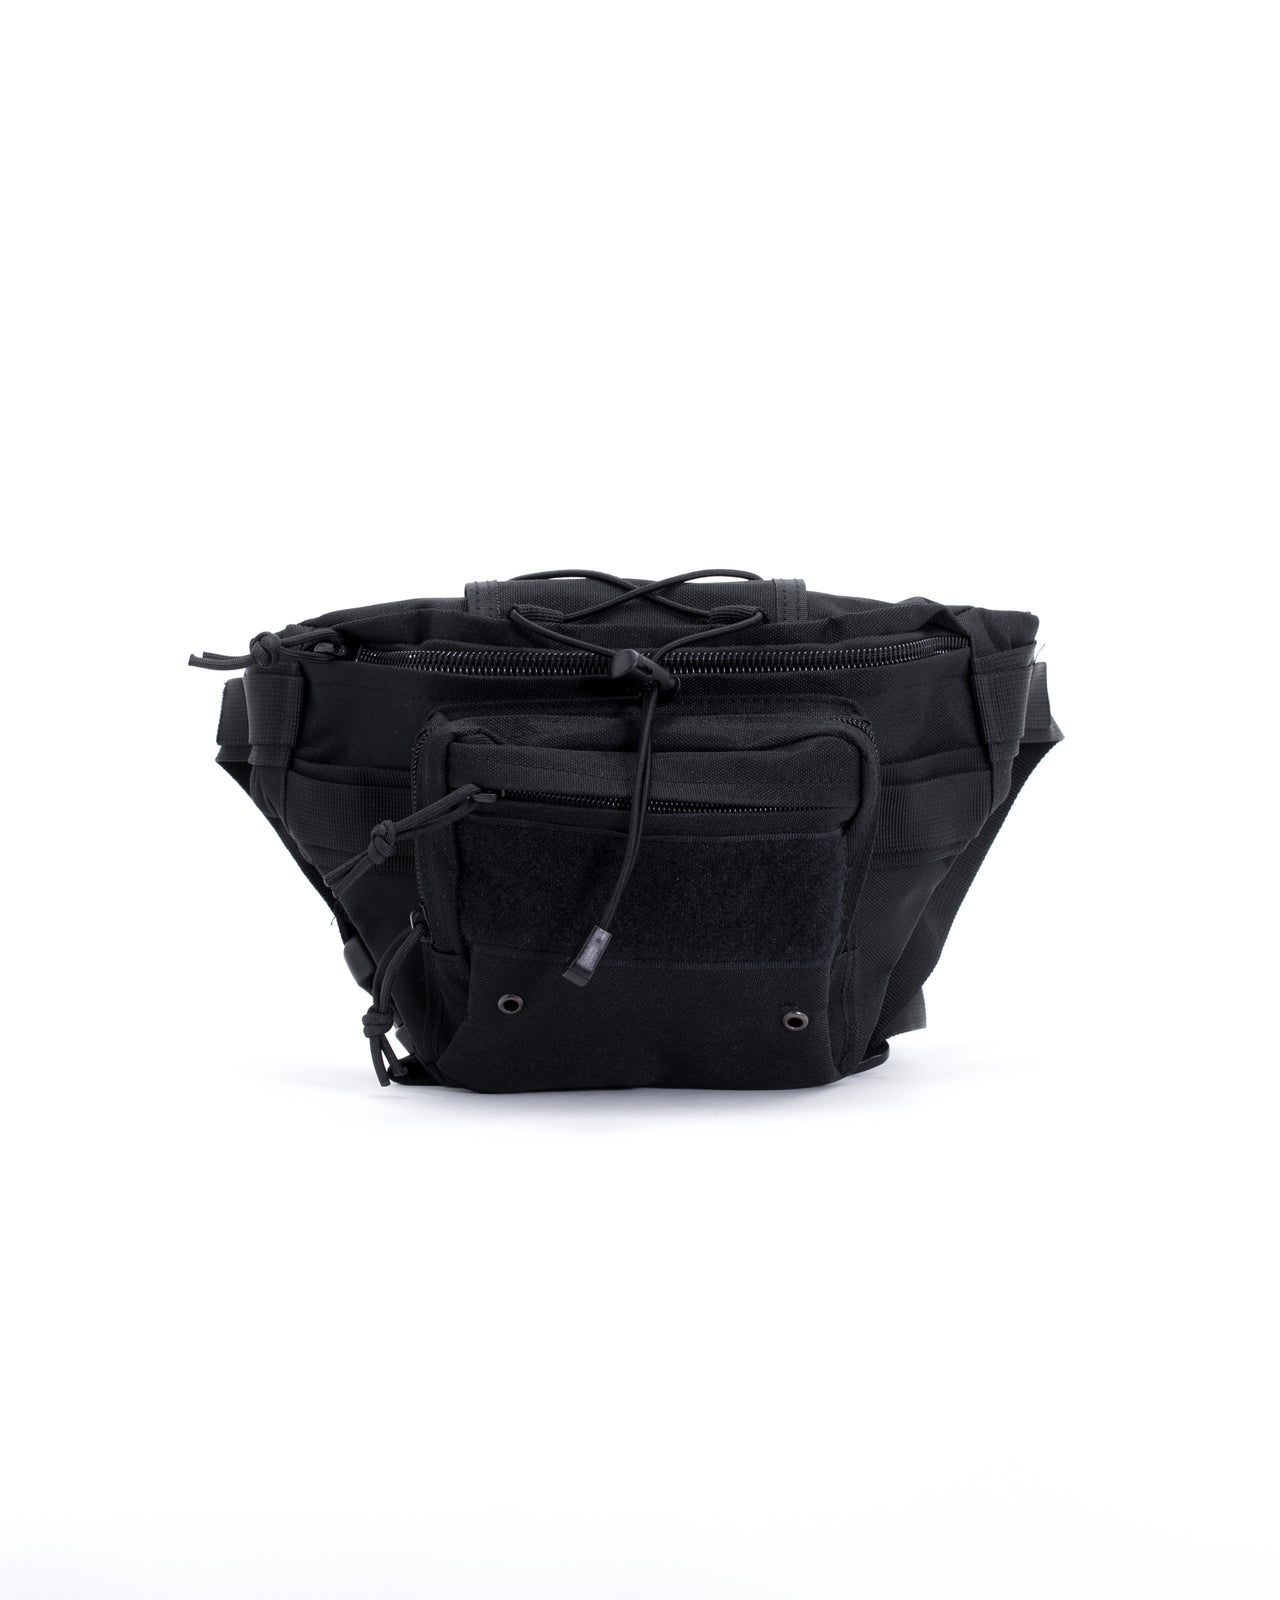 The Hip Pack - Color: Black | Black